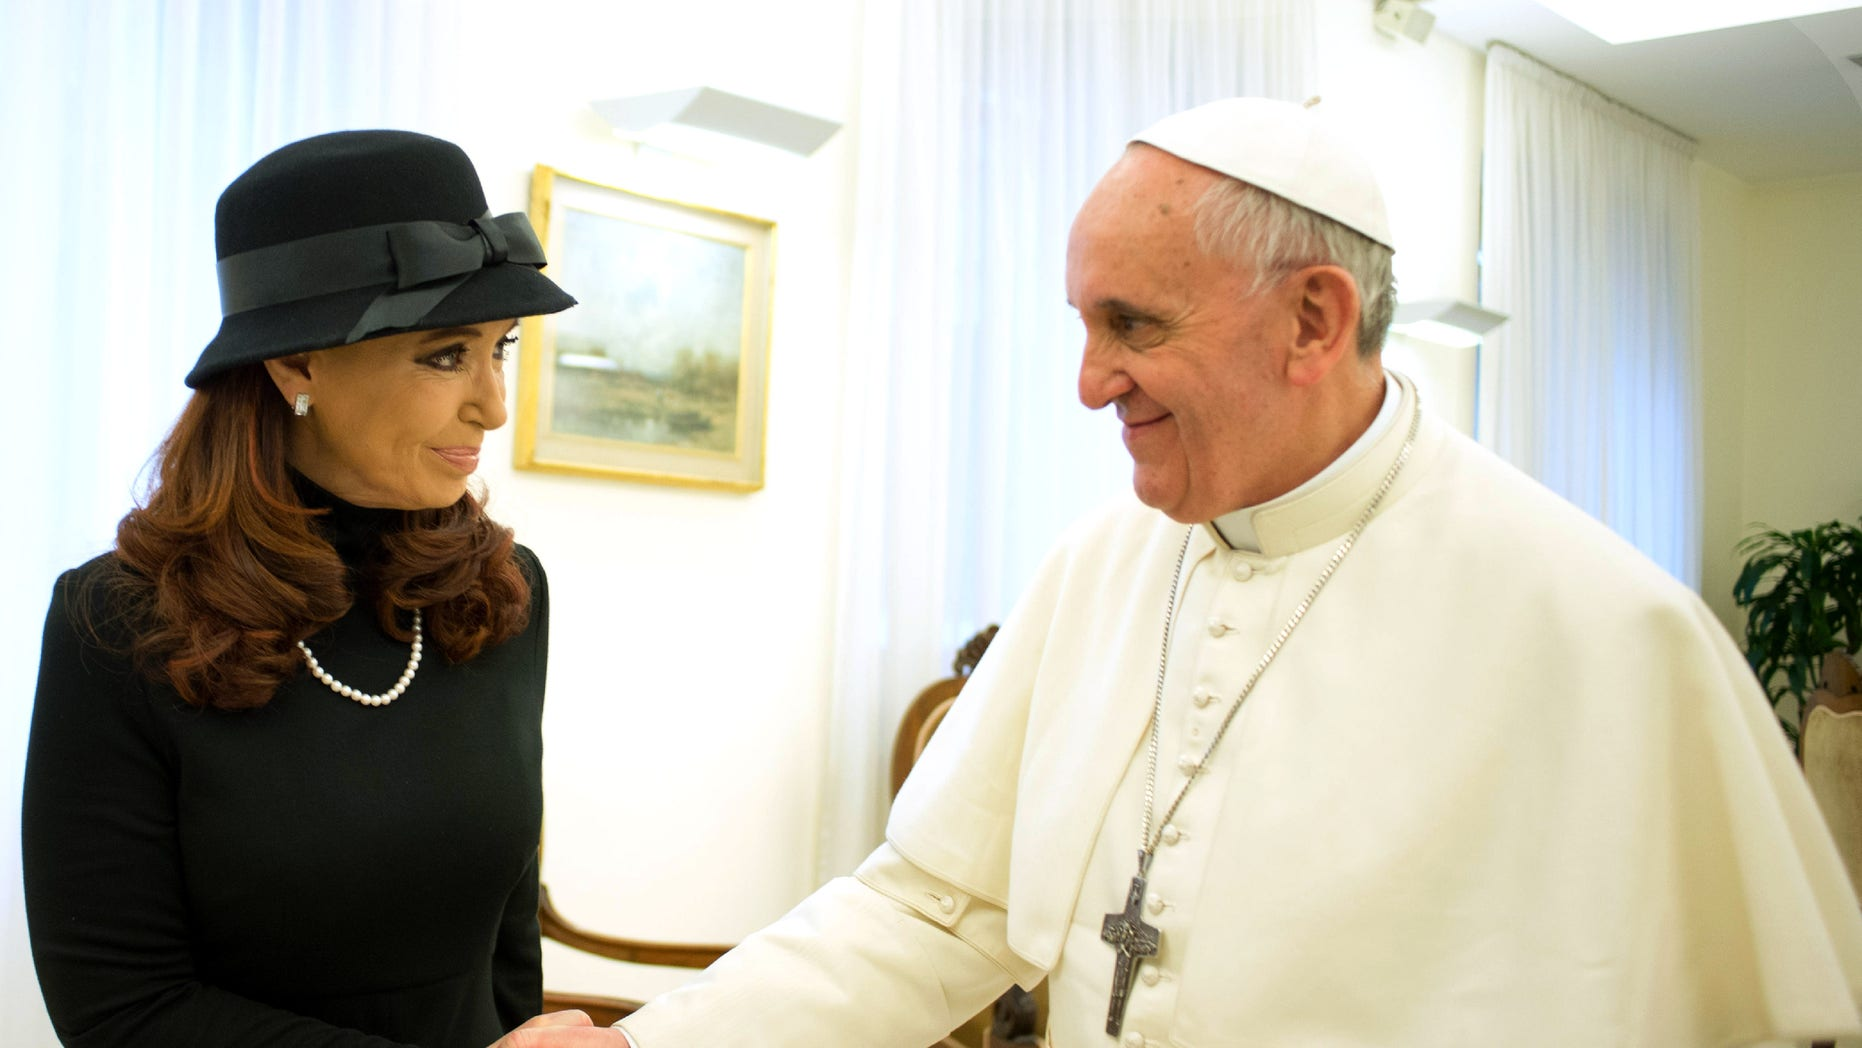 In this photo provided by the Vatican paper L'Osservatore Romano, Pope Francis meets Argentine President Cristina Fernandez at the Vatican, Monday, March 18, 2013.